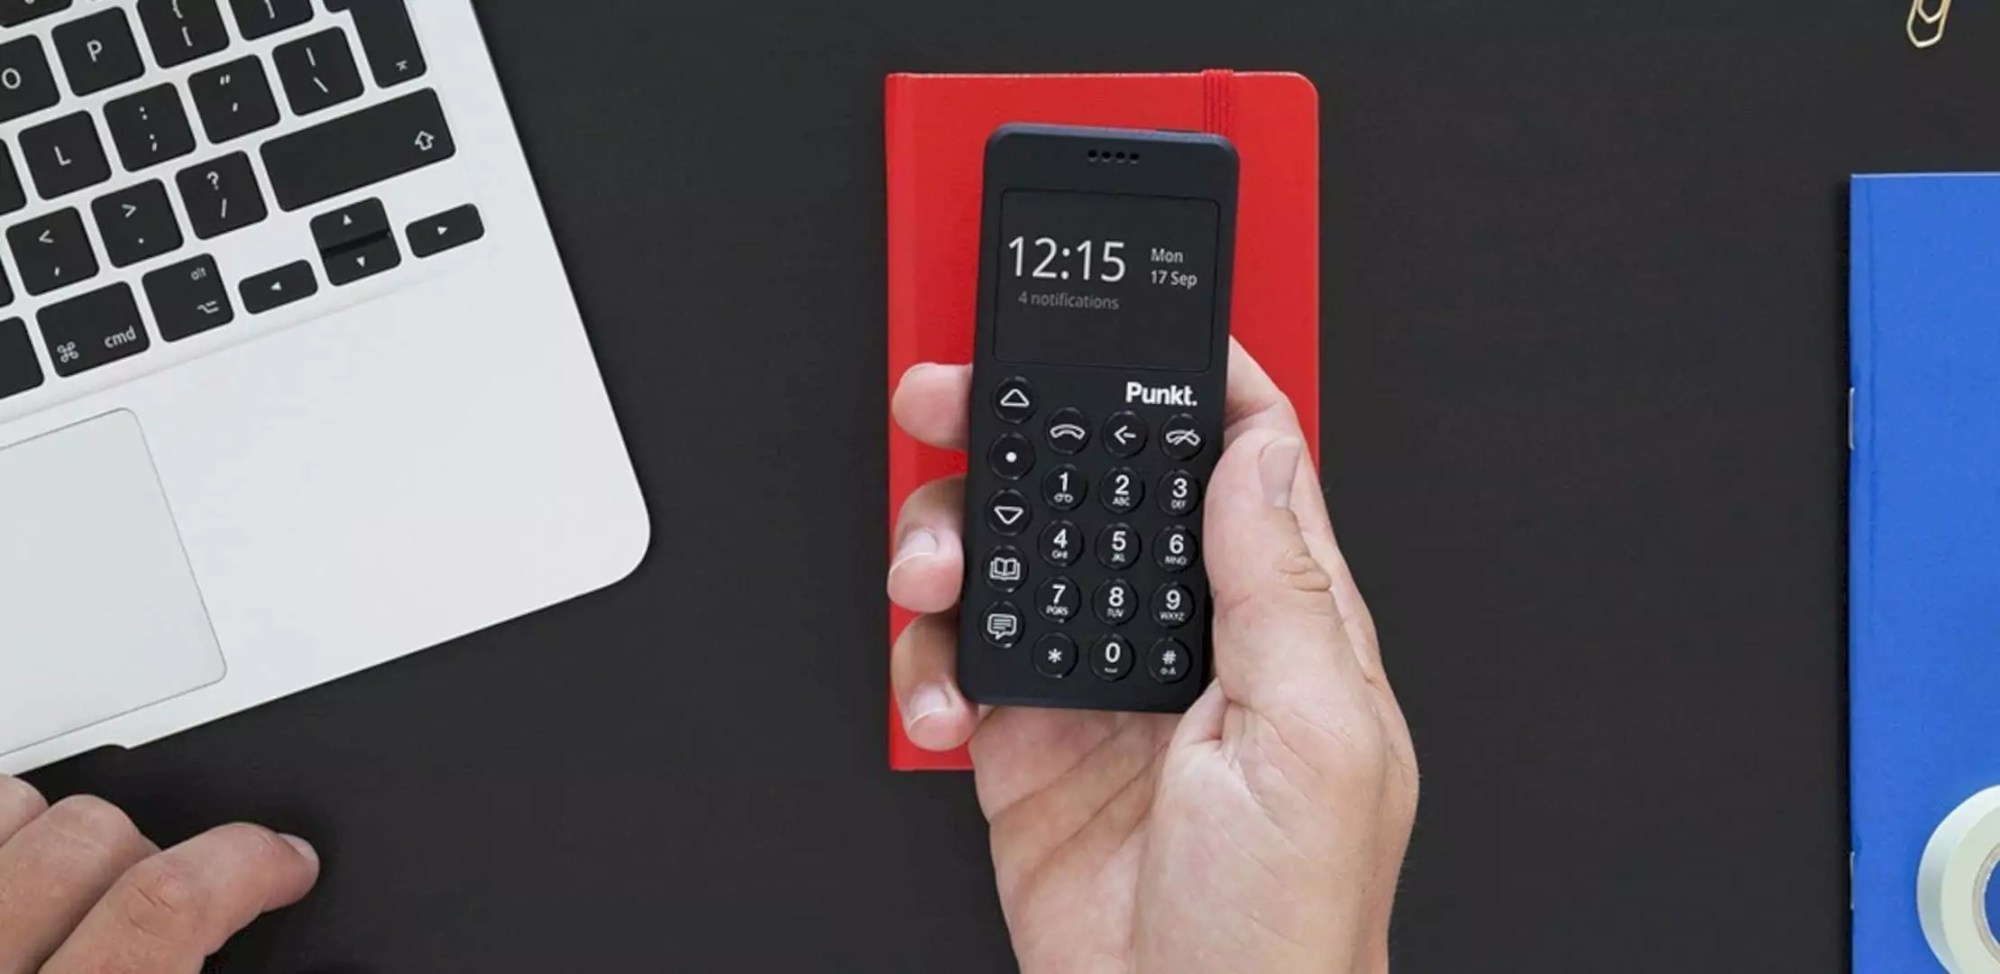 Punkt MP02 4G Mobile Phone: The best of both worlds.